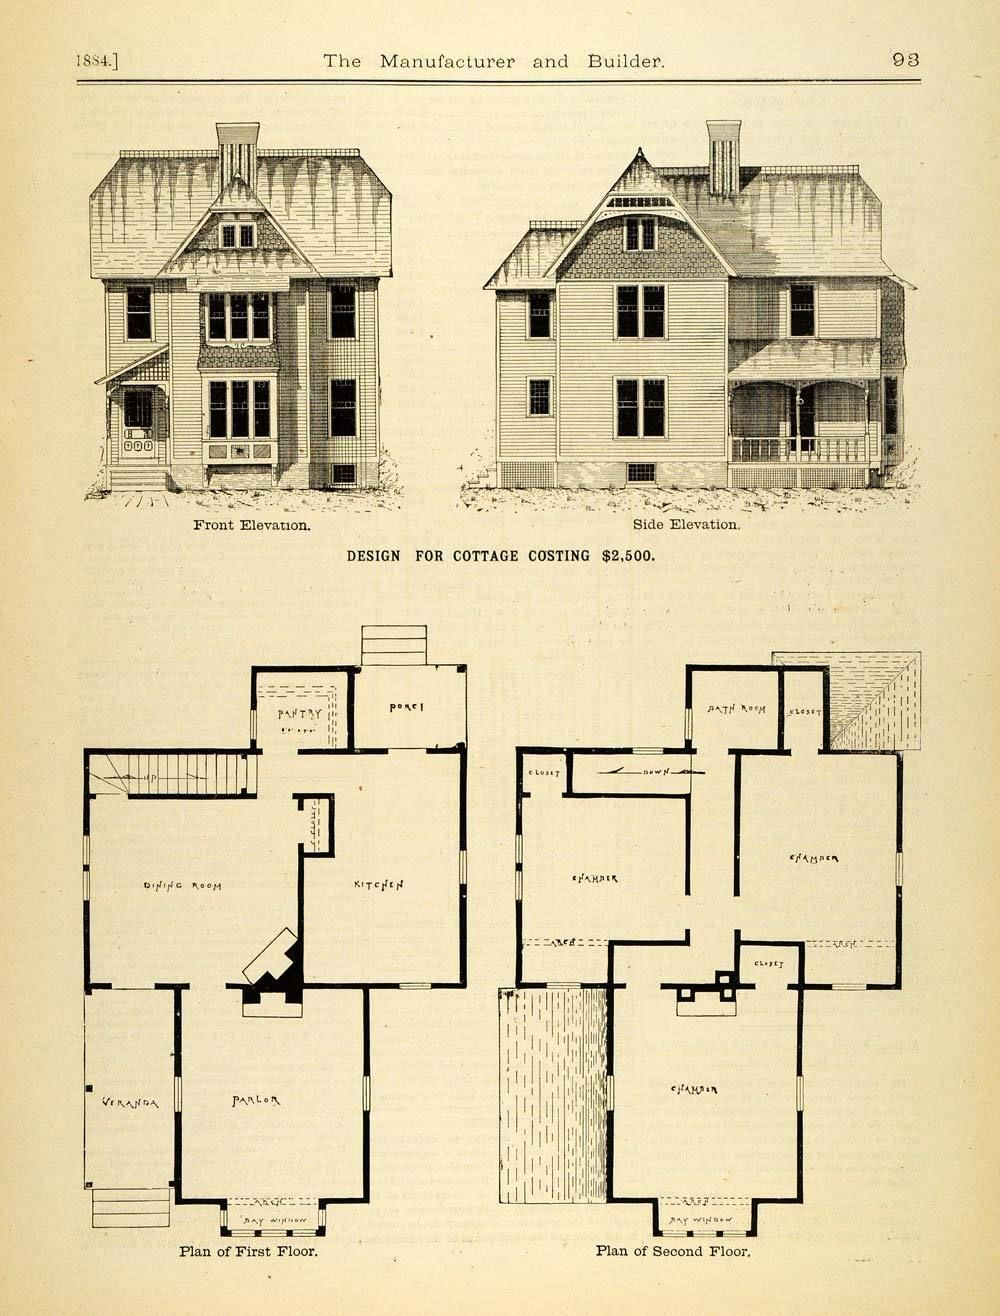 1884 Print Victorian Cottage House Architecture Floor Plans Elevations Mab1 Ebay Modern House Plans Victorian House Plans Floor Plans